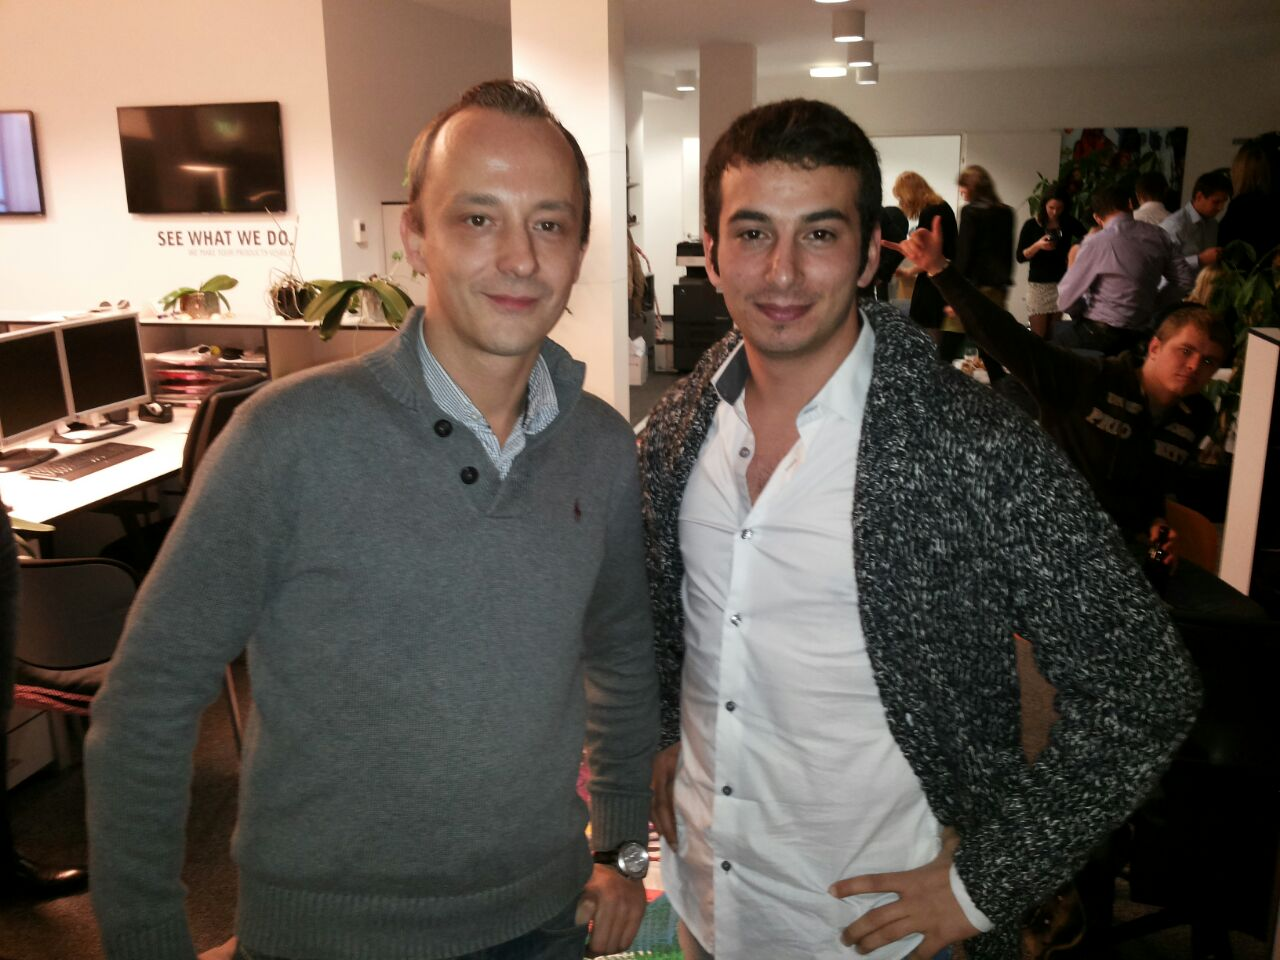 Partners, Aleks and Serkan, Homepage Design and Development